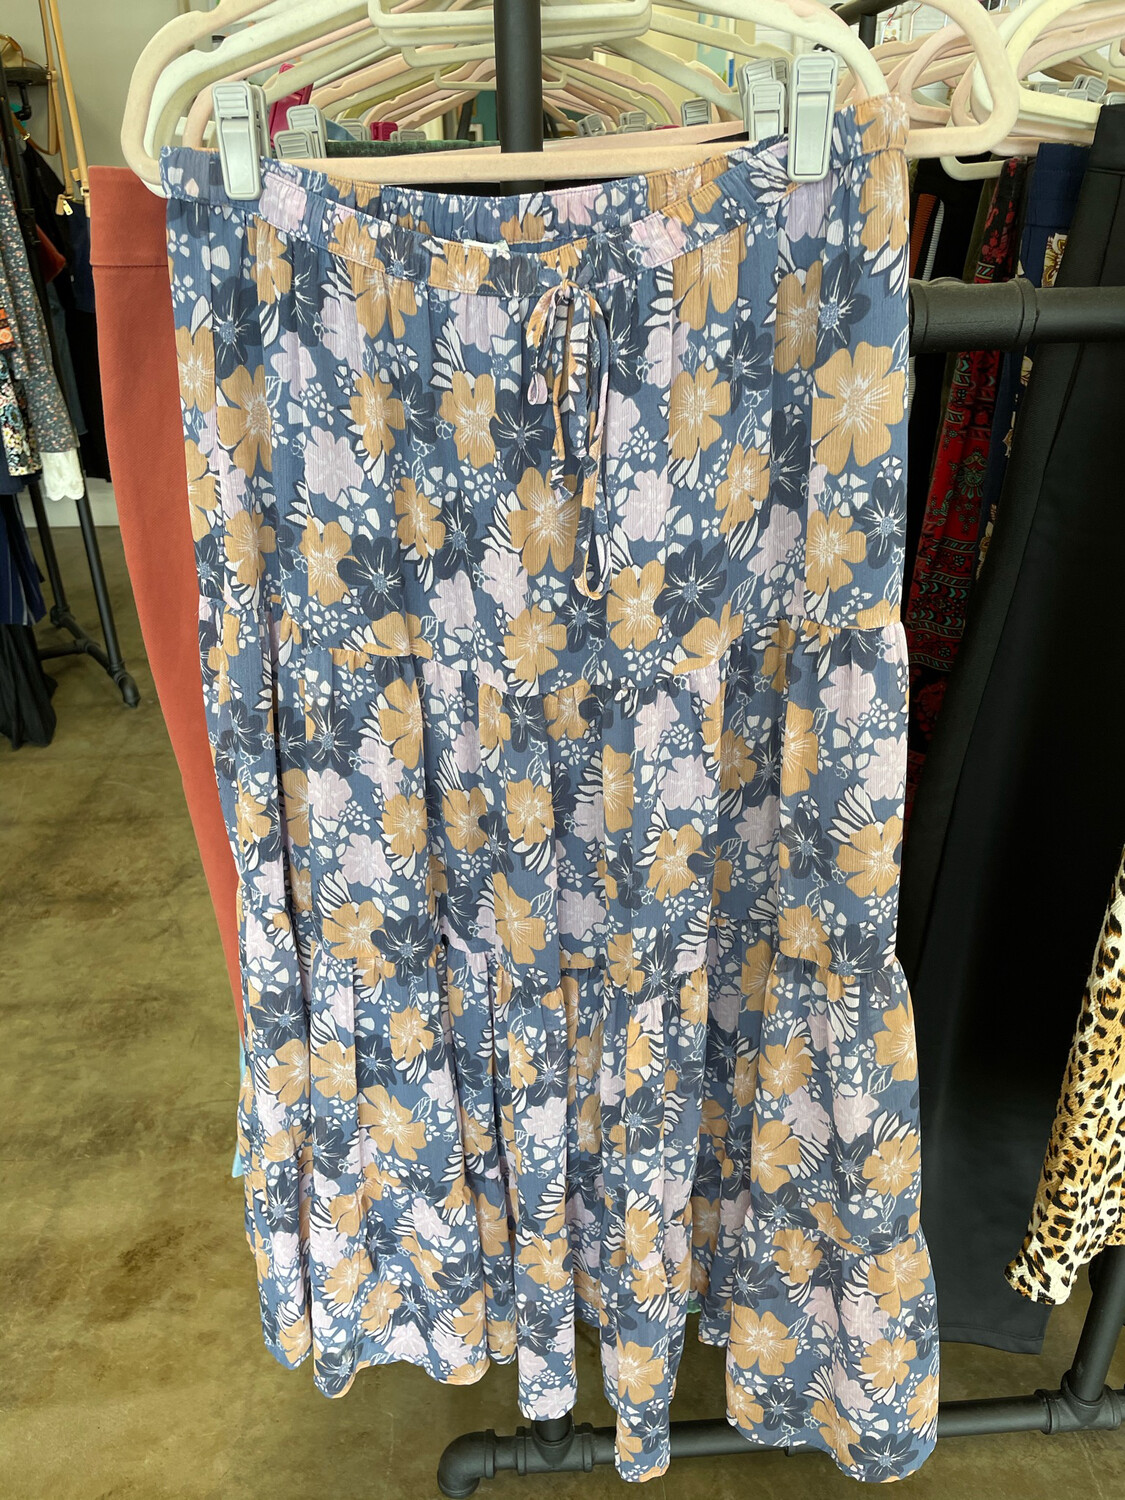 Aerie Blue & Pink Floral Drawstring Maxi Skirt - L